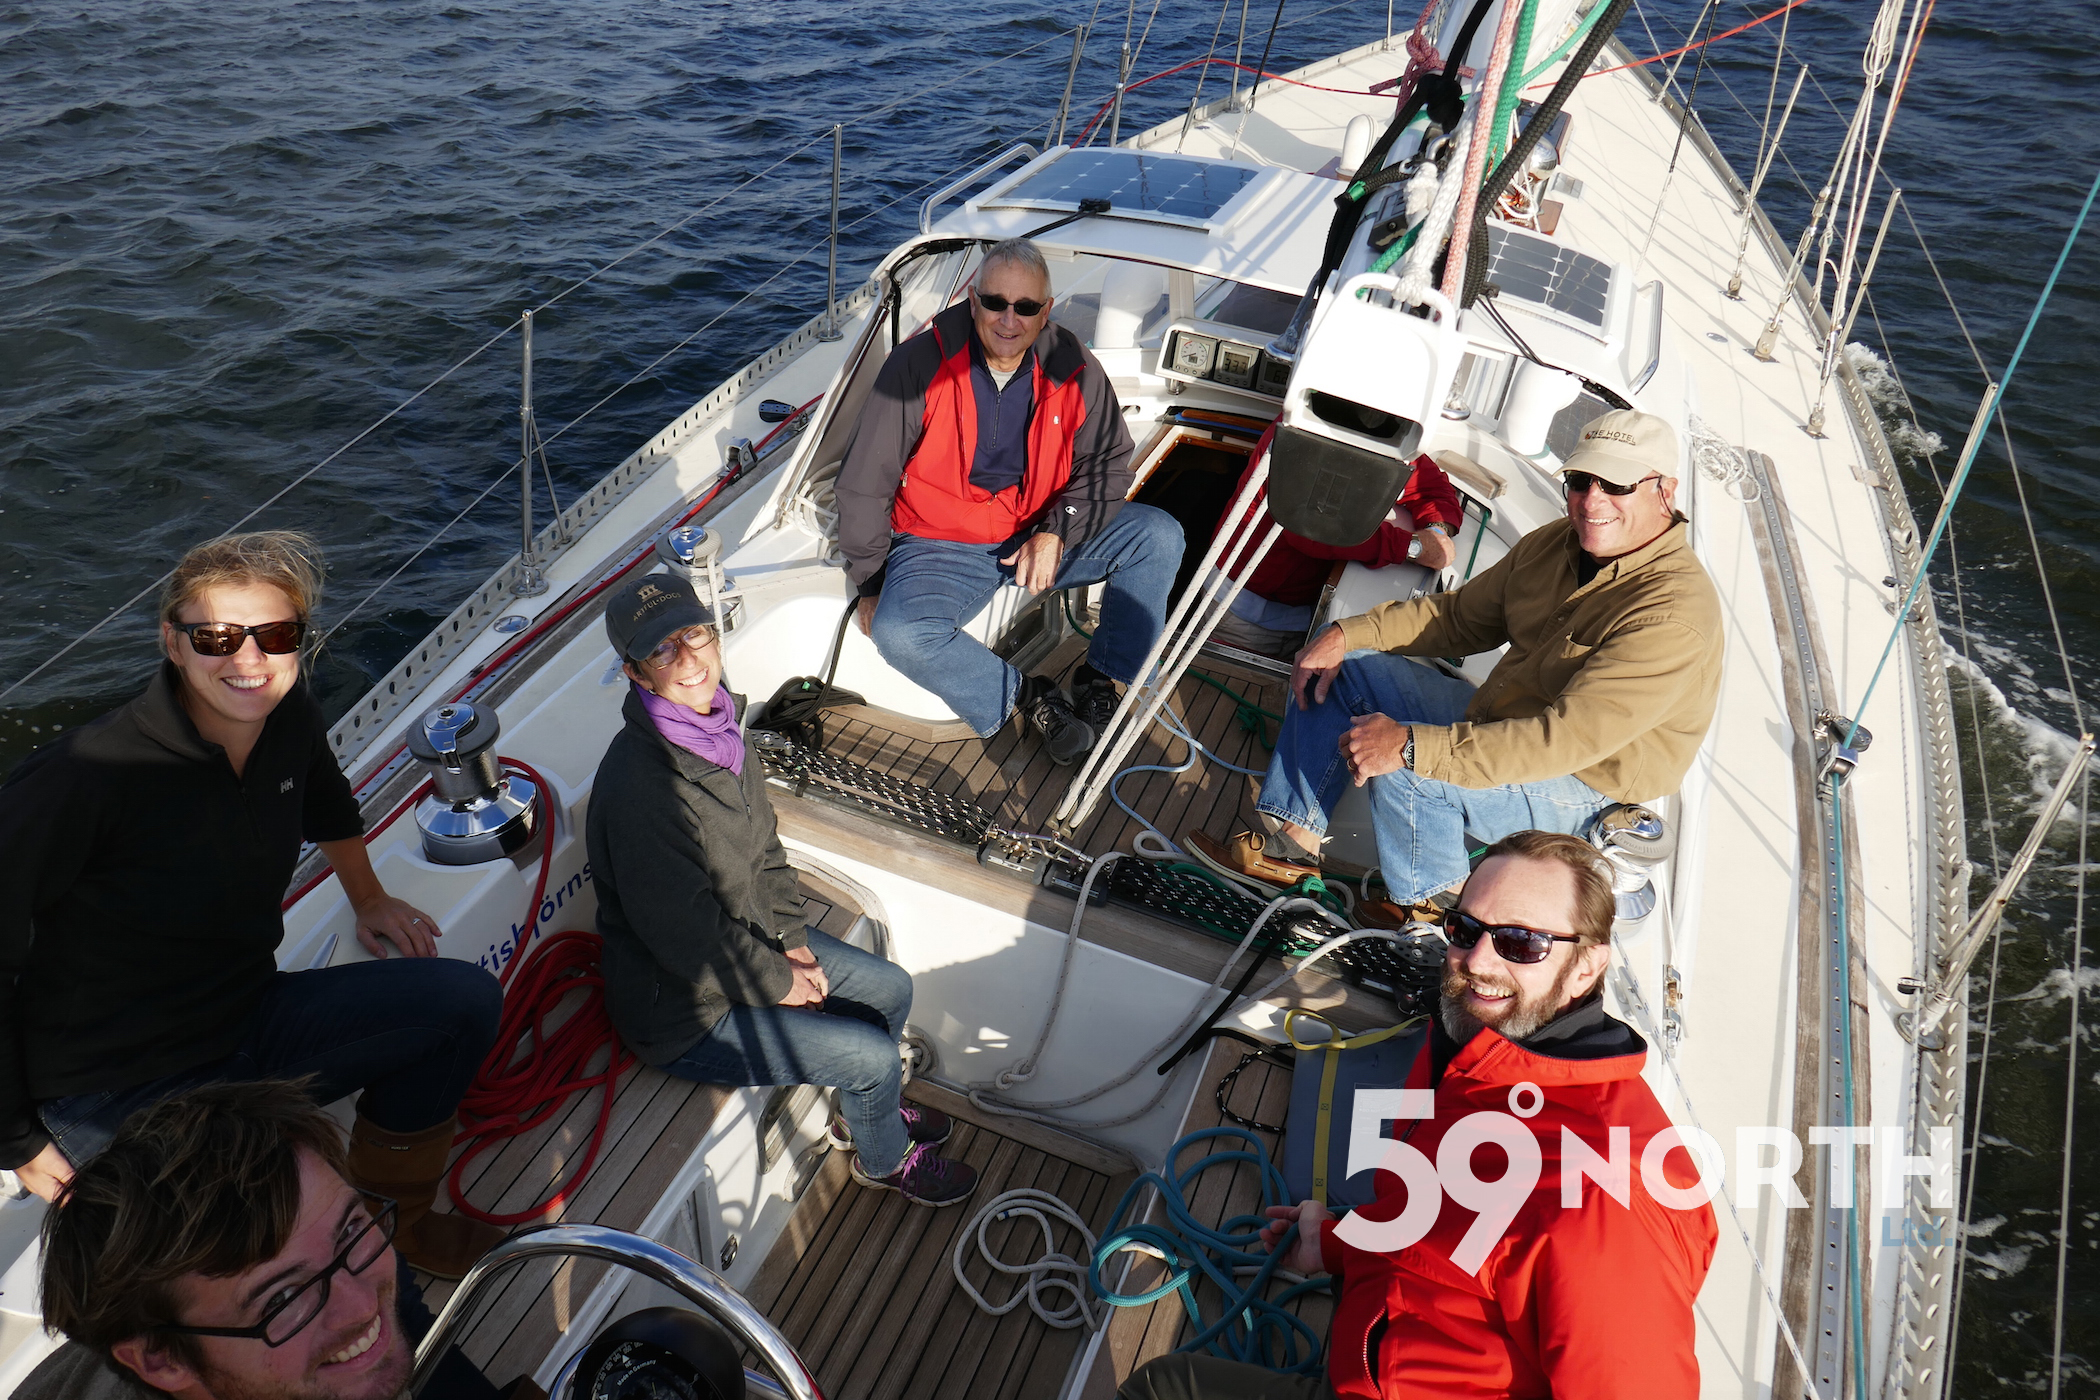 Shakedown sail in Annapolis with friends, checking out the new genoa and jib from Chesapeake Sailmakers! Amazingly, all sail fit on first try! Oct. 2016